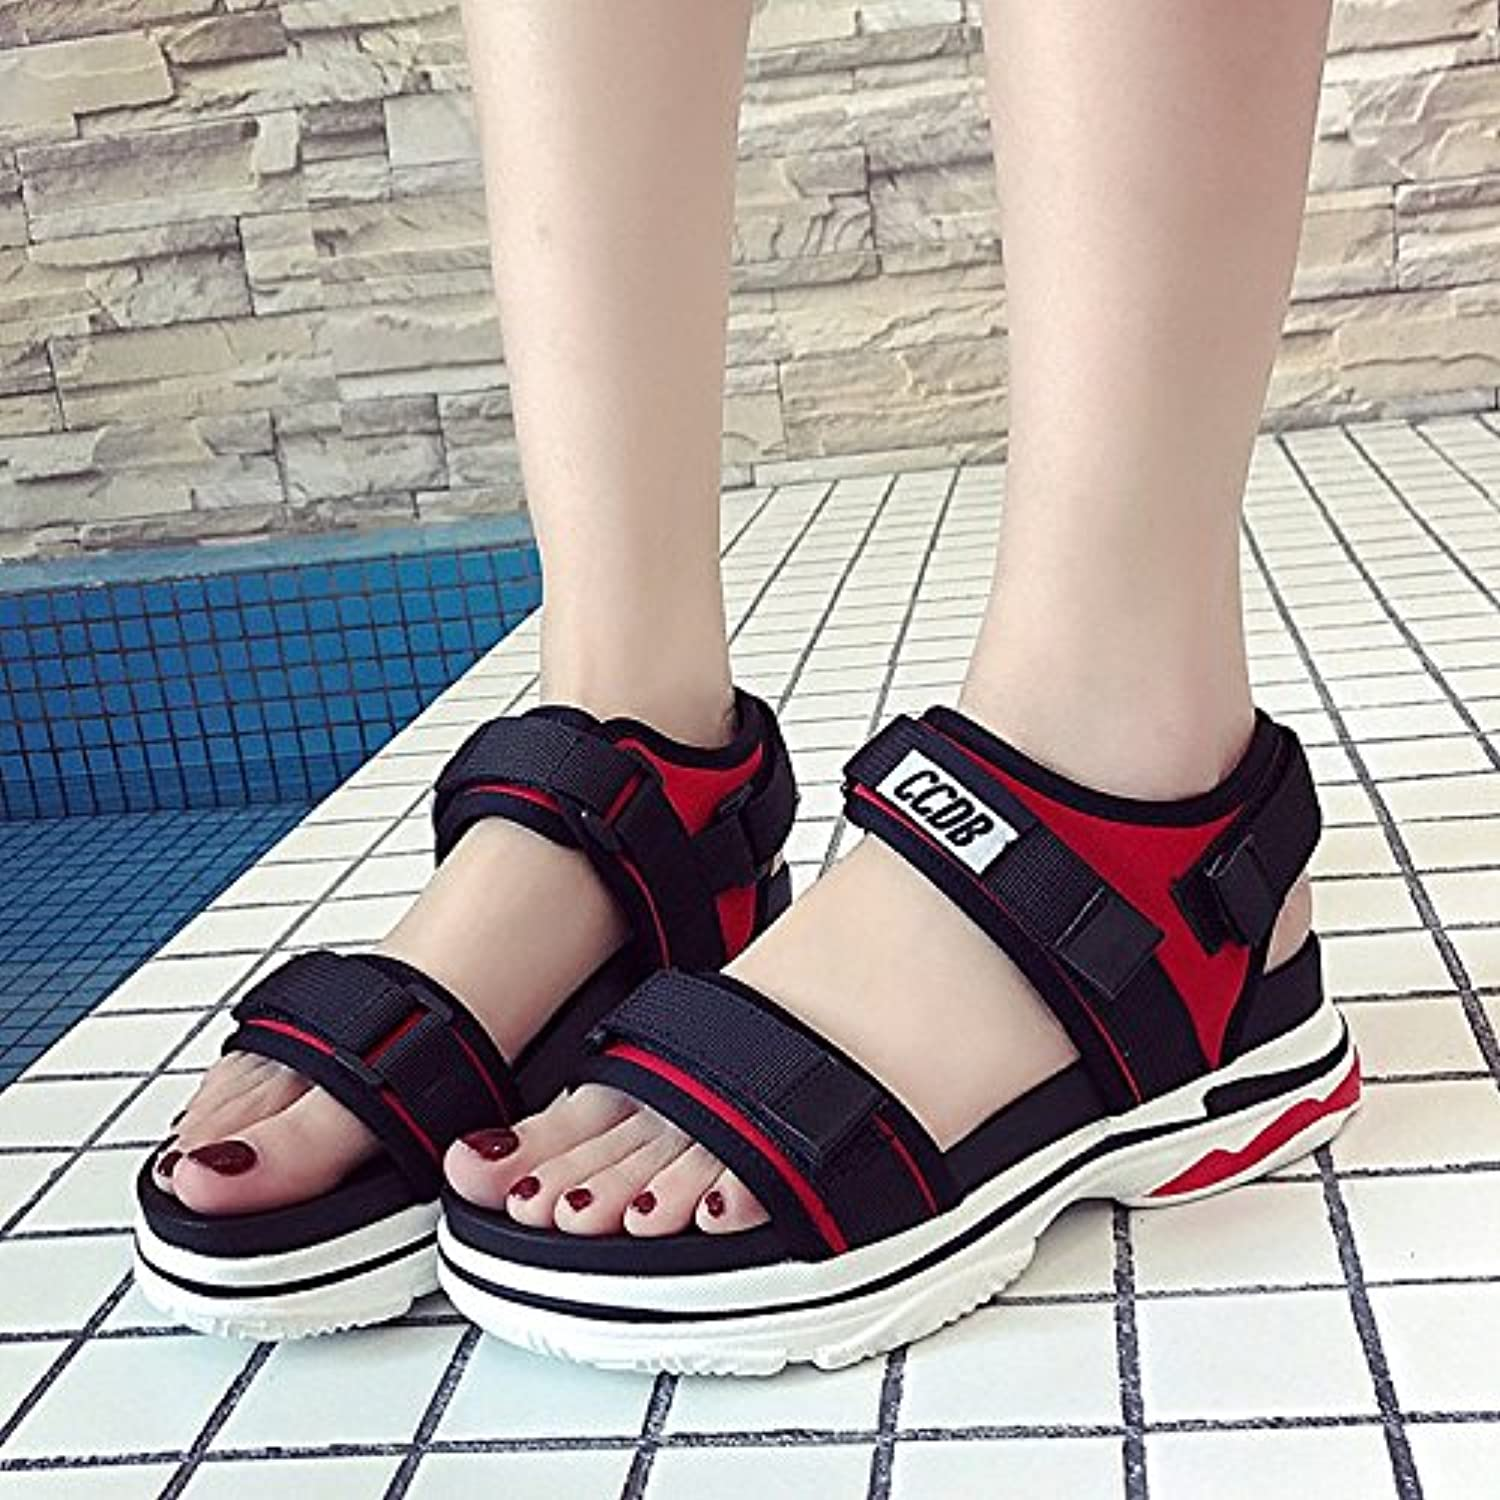 GAOLIM The Girl Summer Sandals Women shoes Flat Women'S shoes Beach shoes Women shoes Sports Men And Women Couple, shoes-Laces.